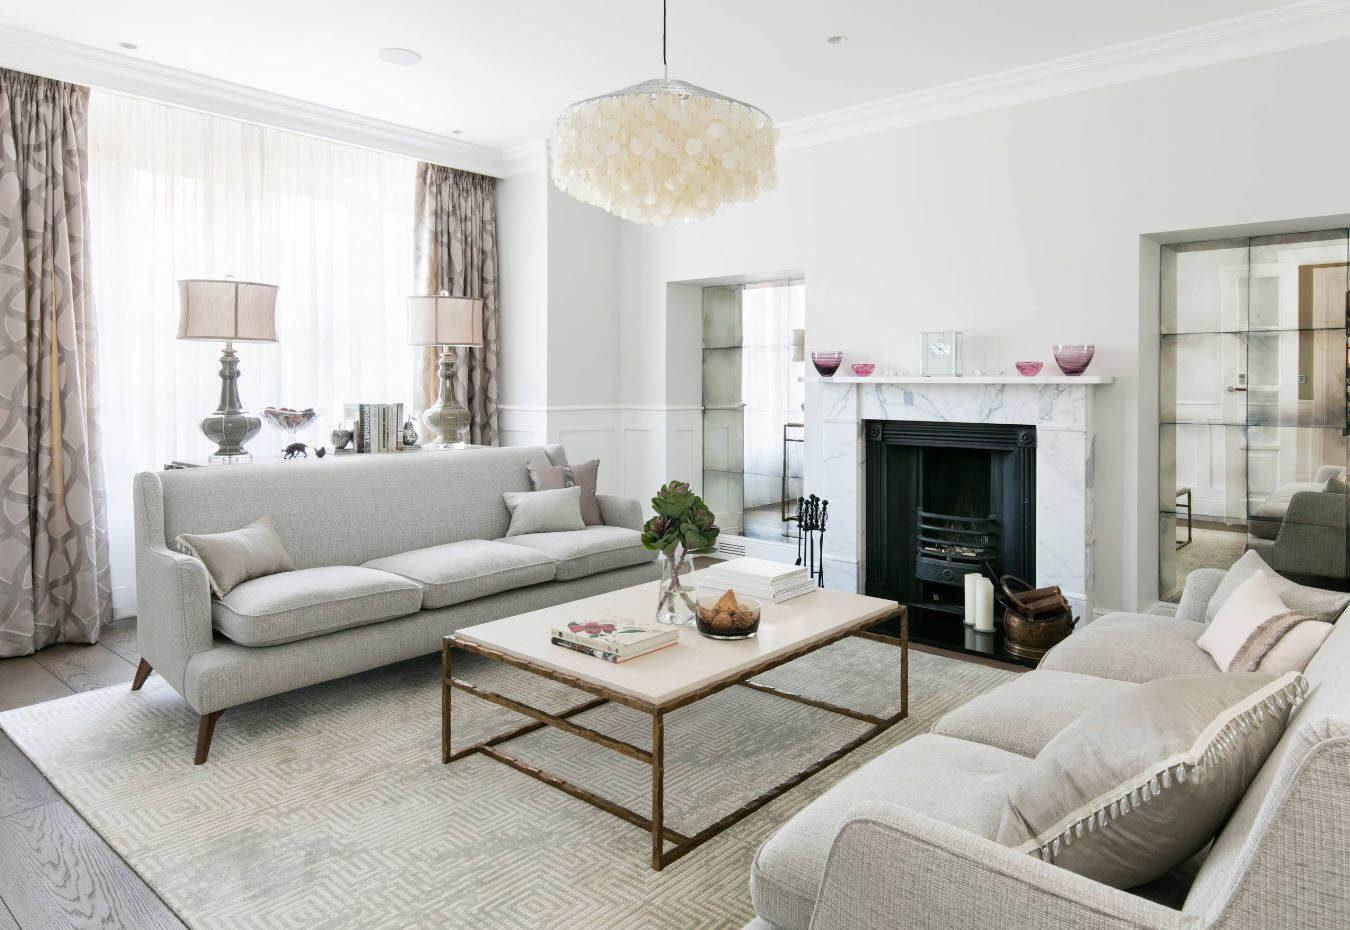 Gray room with mantelshelf and Contemporary style of decoration